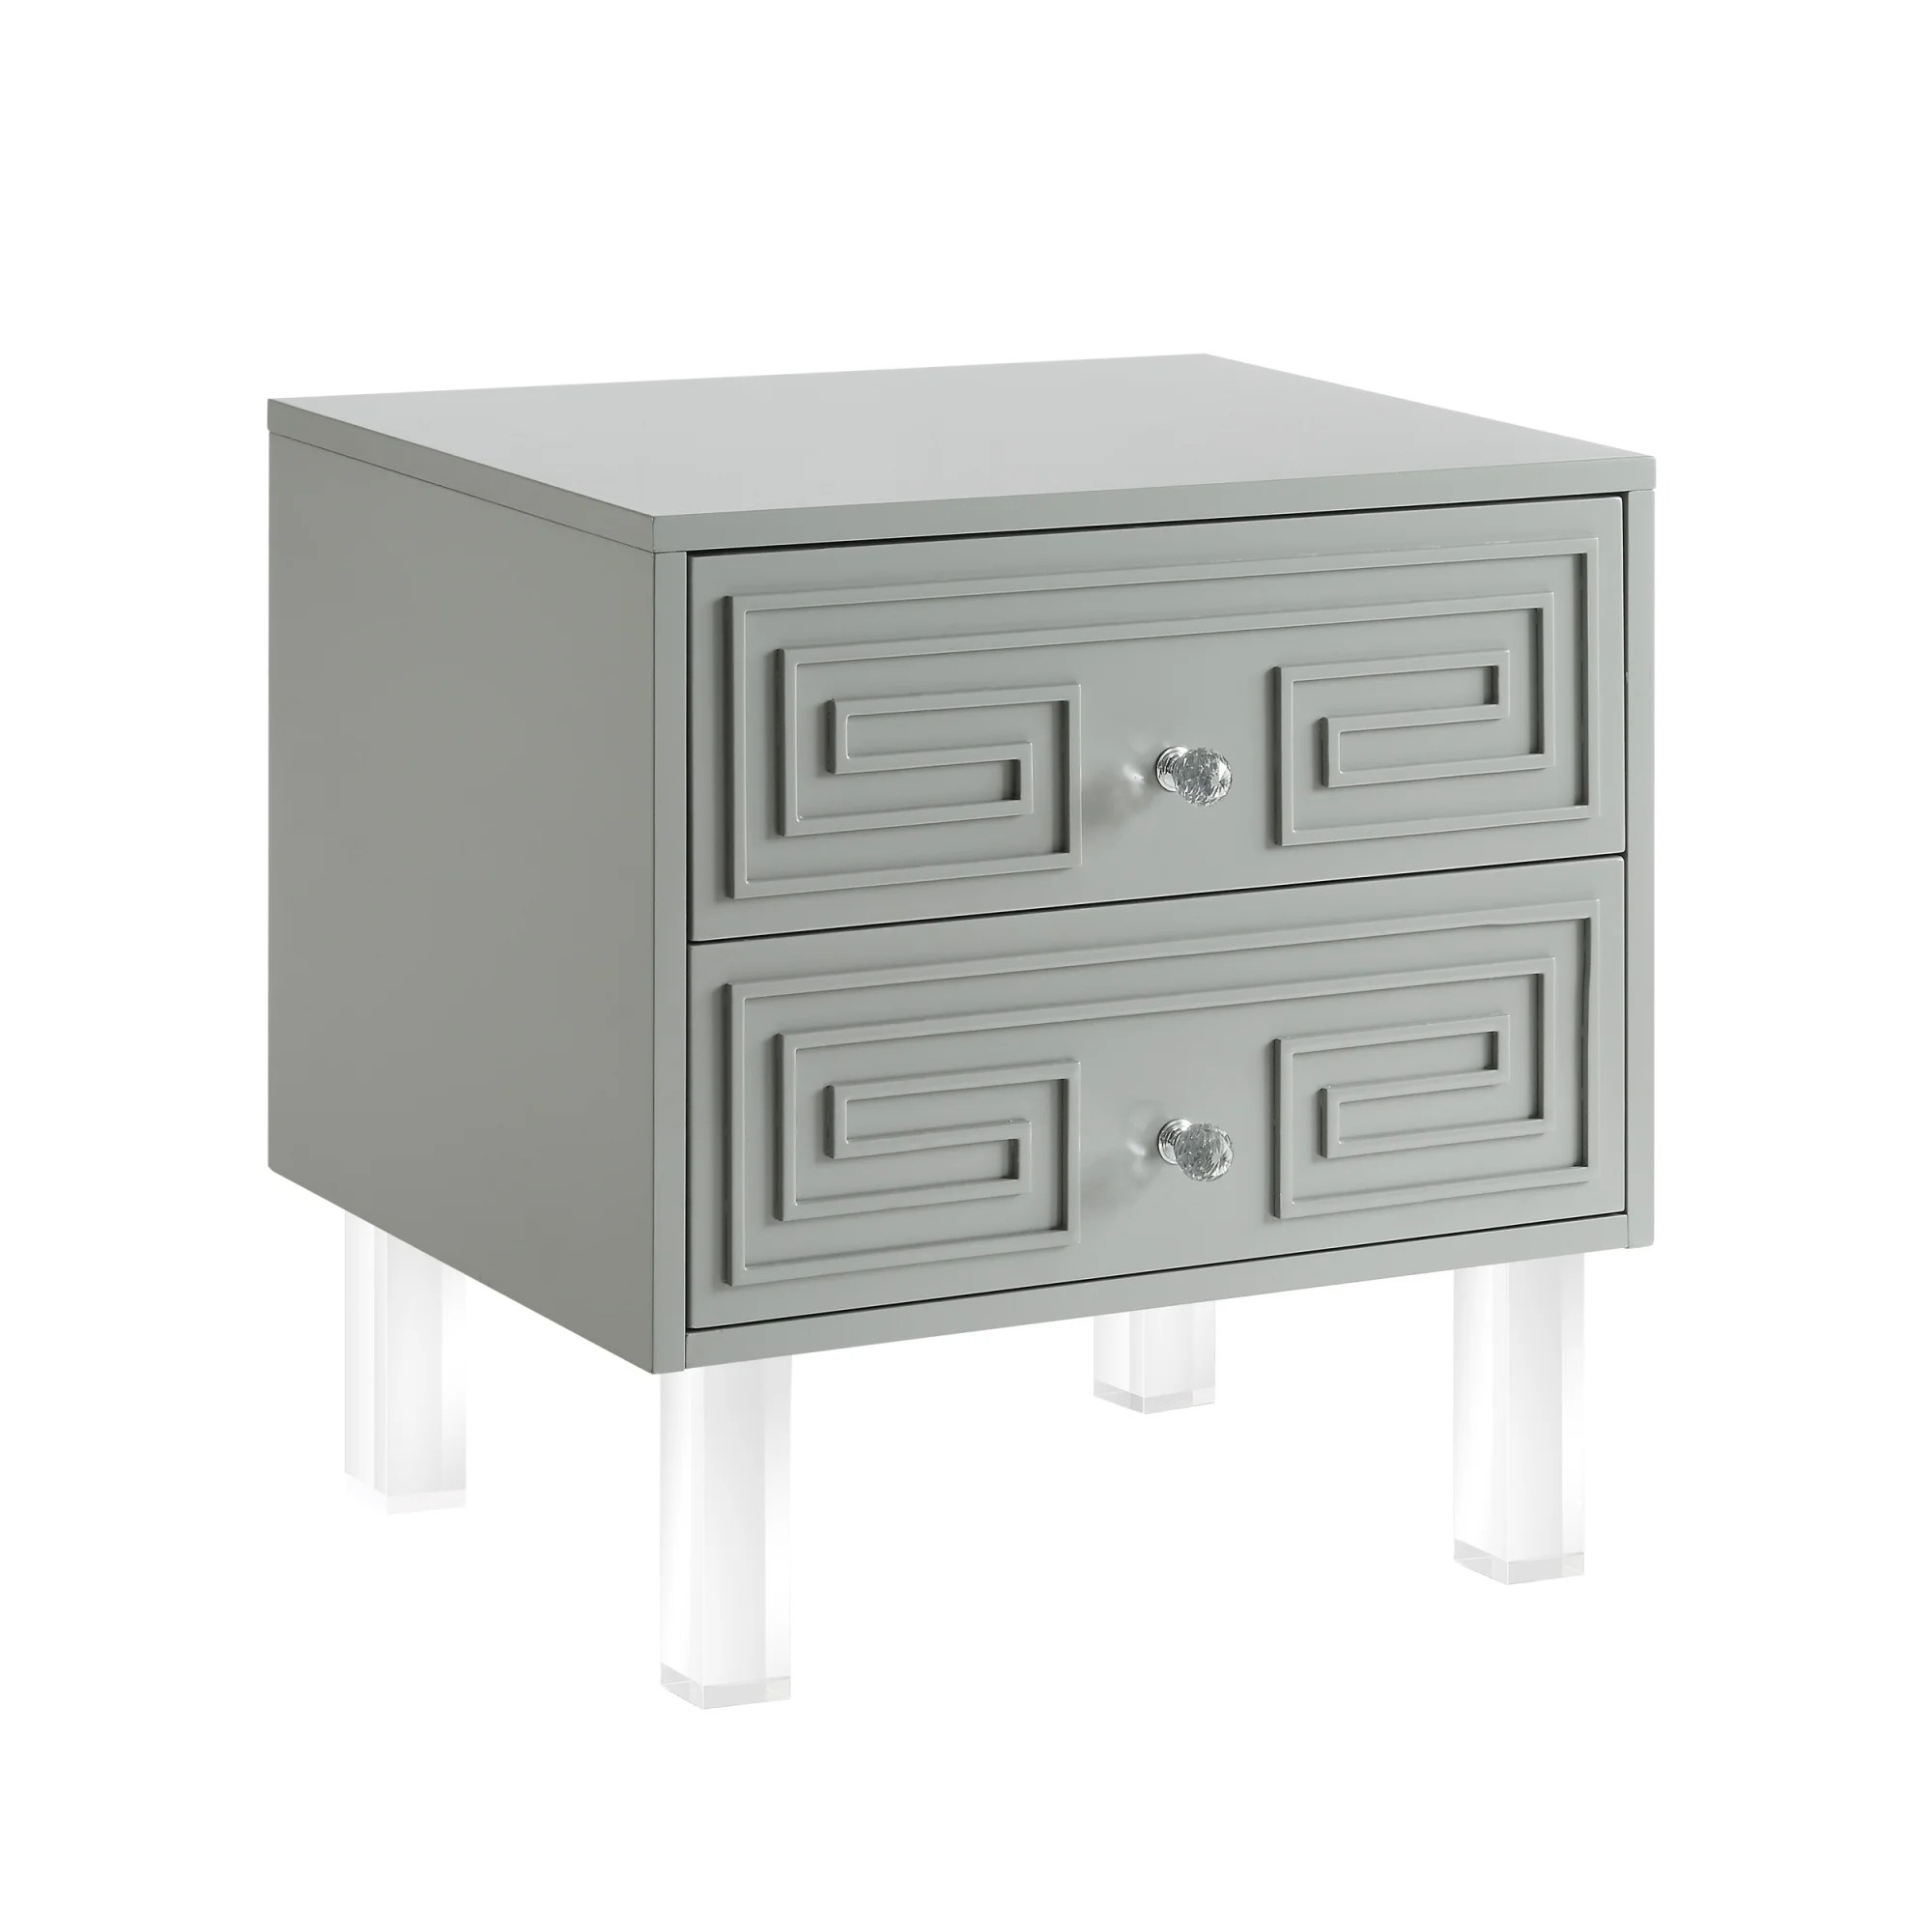 Wolf Lacquer Nightstand Side Table Accent Table Greek Key Design Acrylic Legs